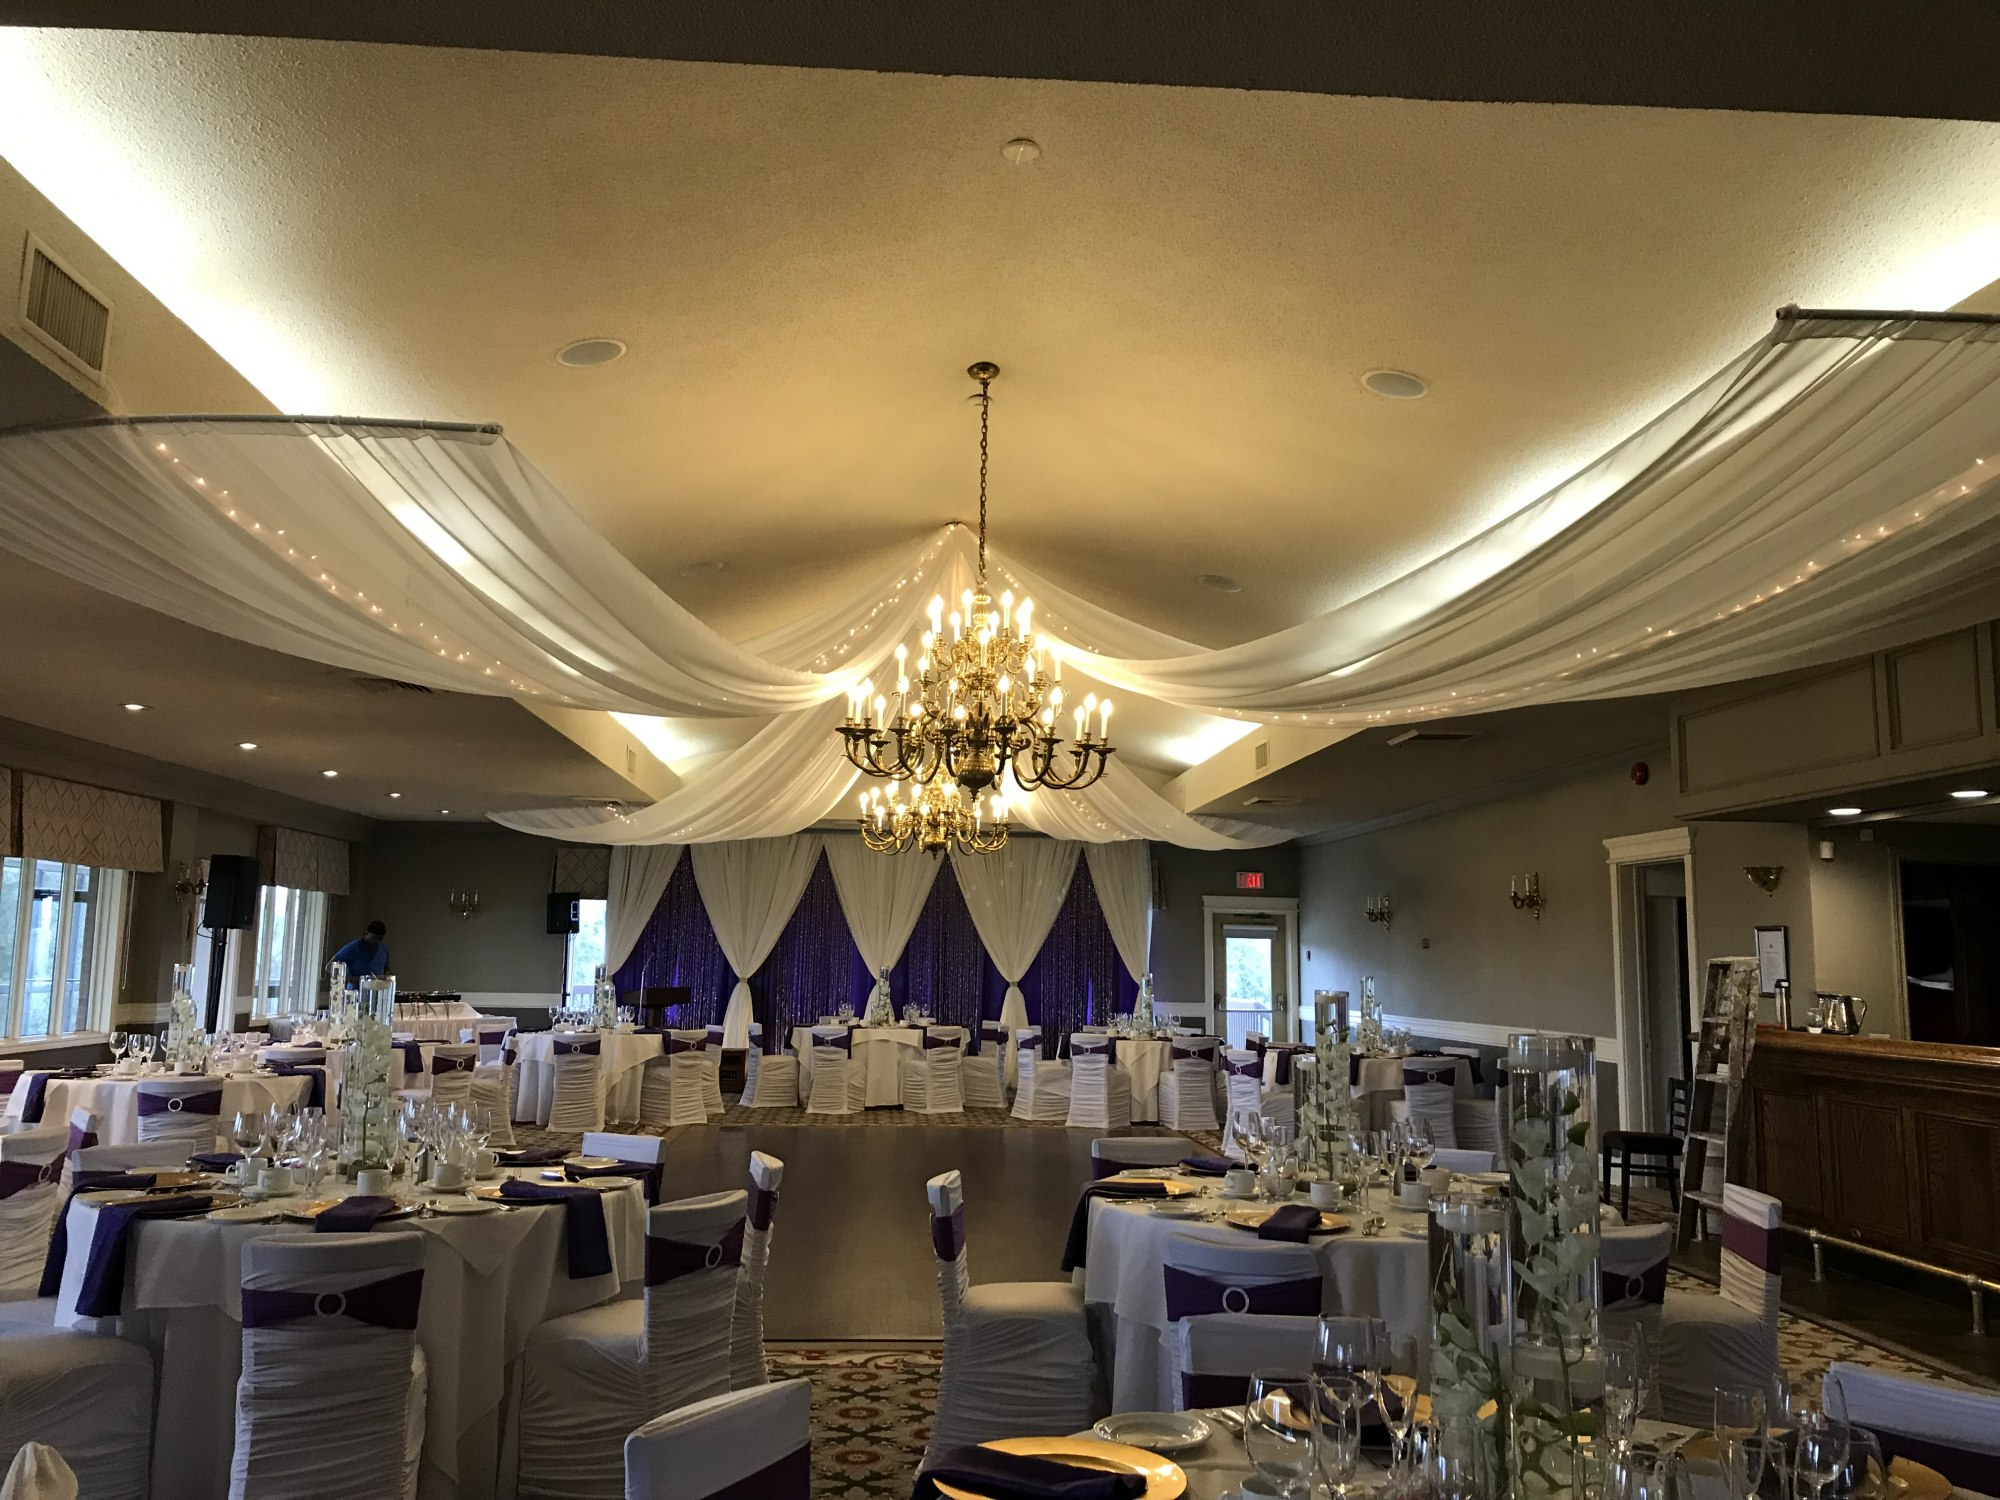 4 Sheer Ceiling Swags with Mini Lights